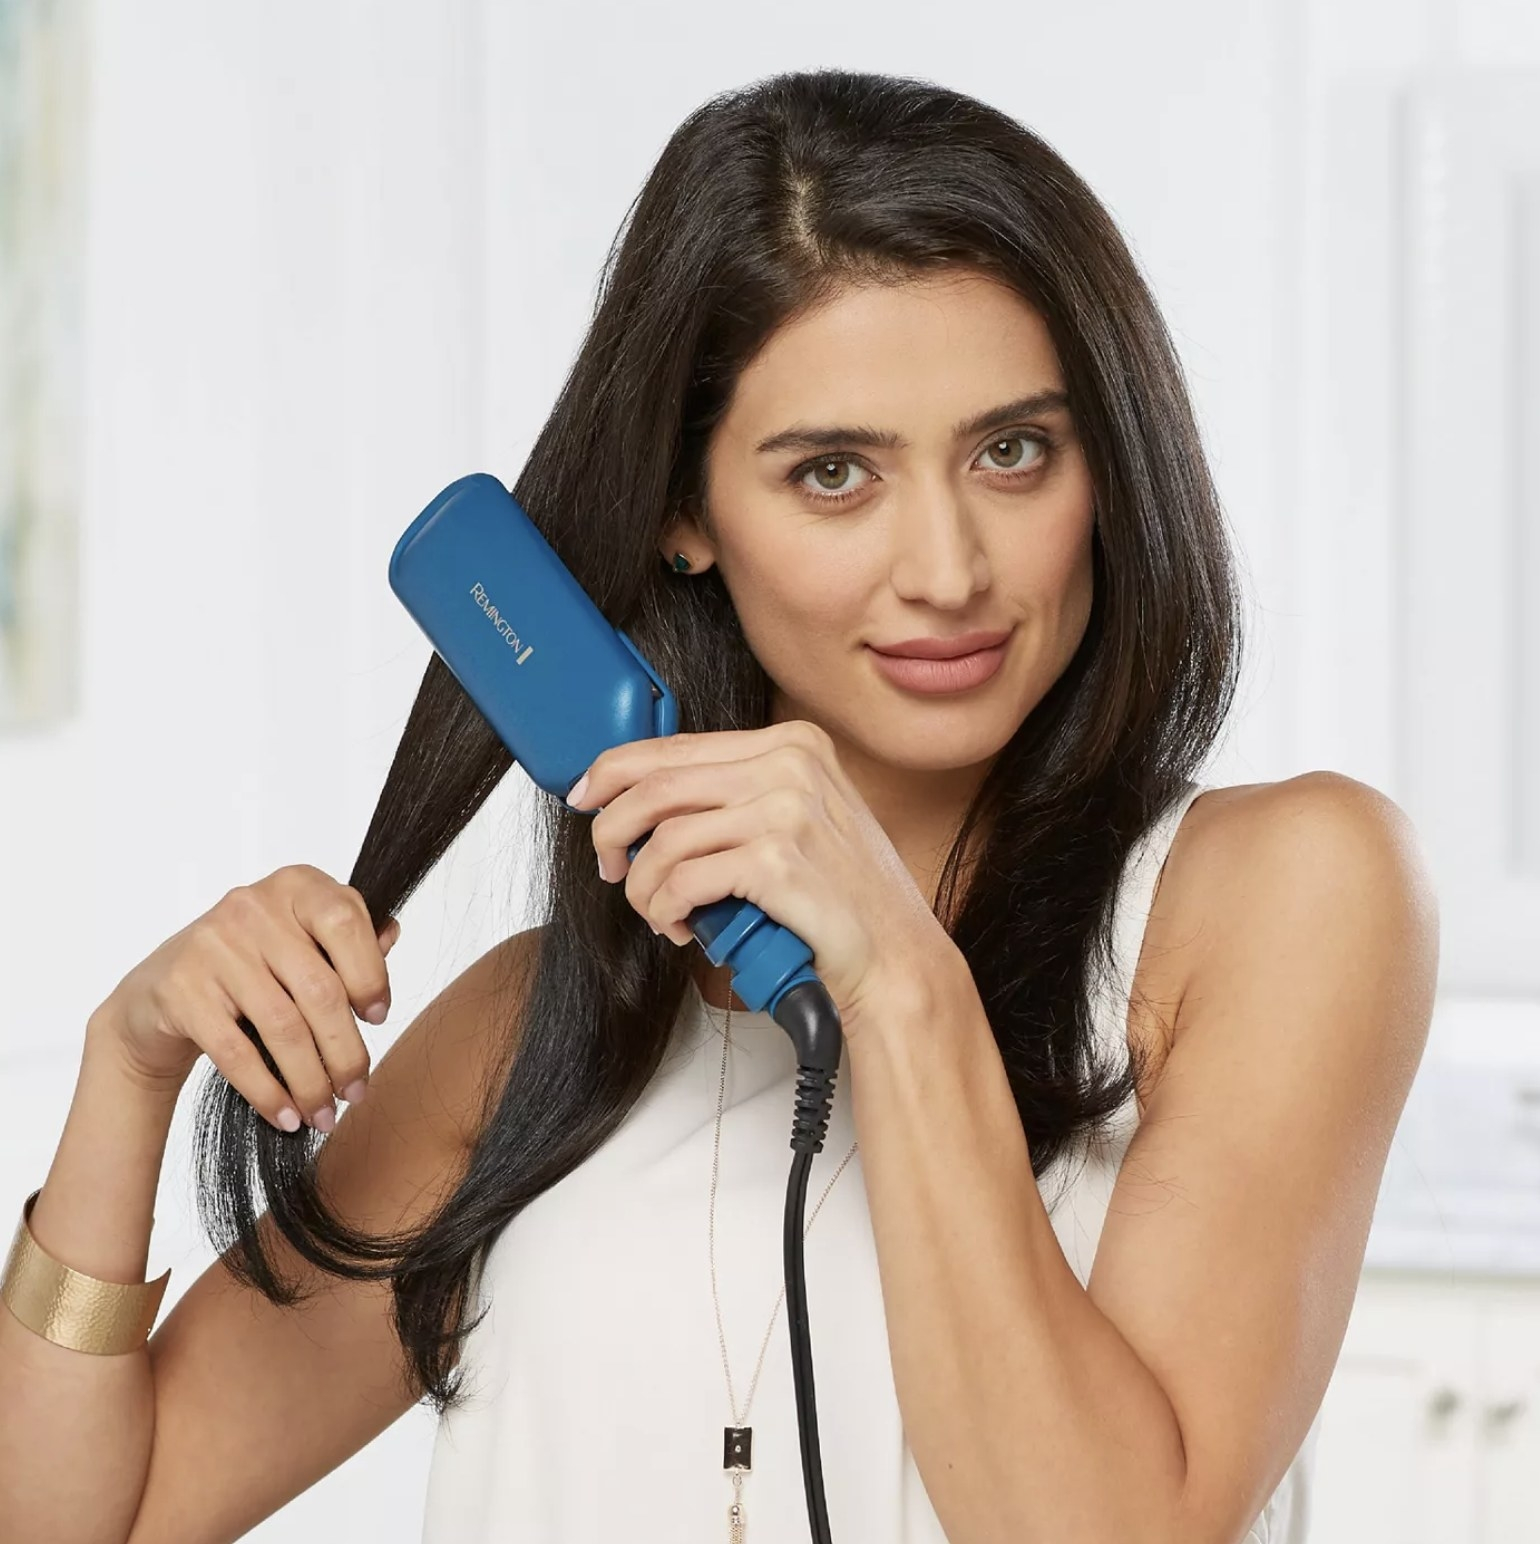 Model is using a blue 2-inch flat iron on their dark hair